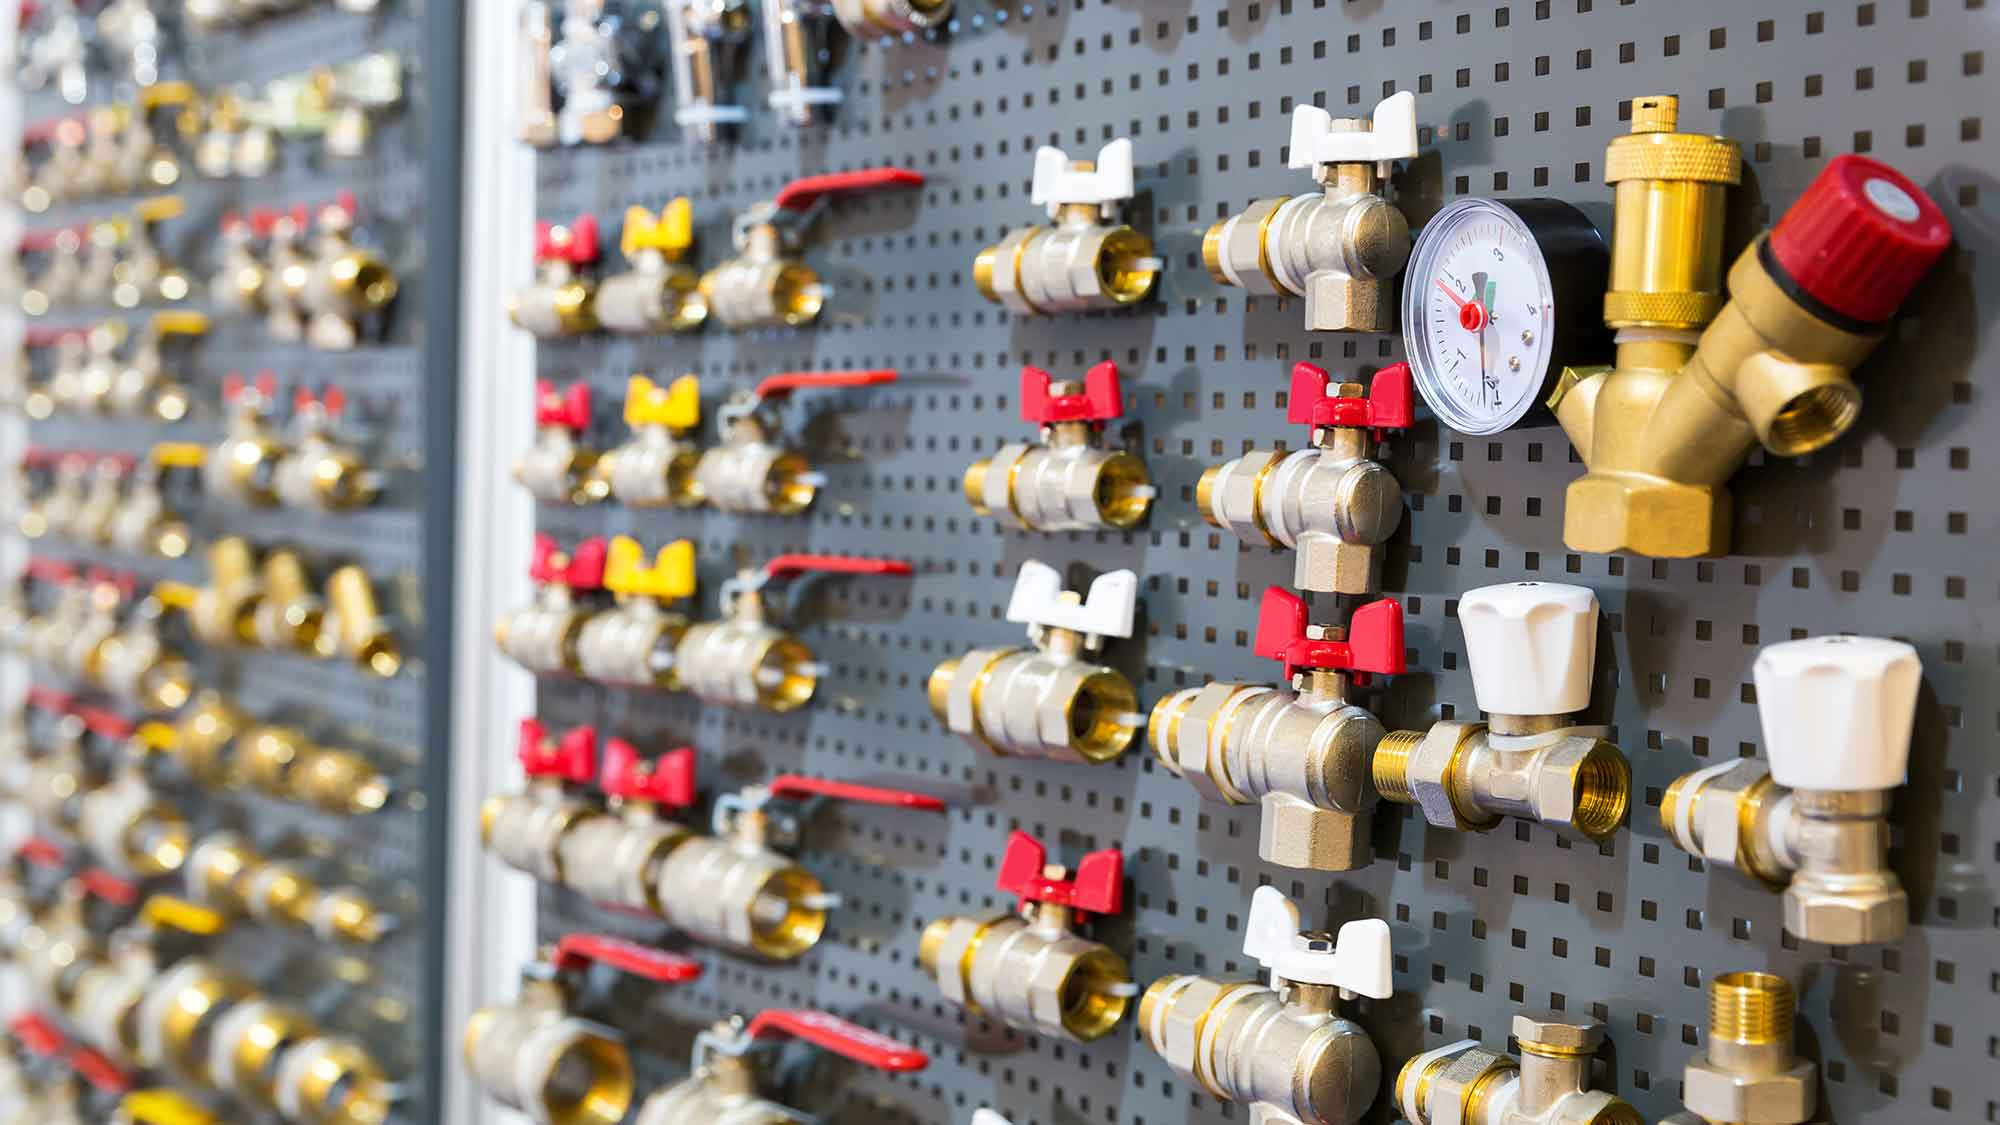 heating manufacturers suppliers essex maintenance leigh on sea parts